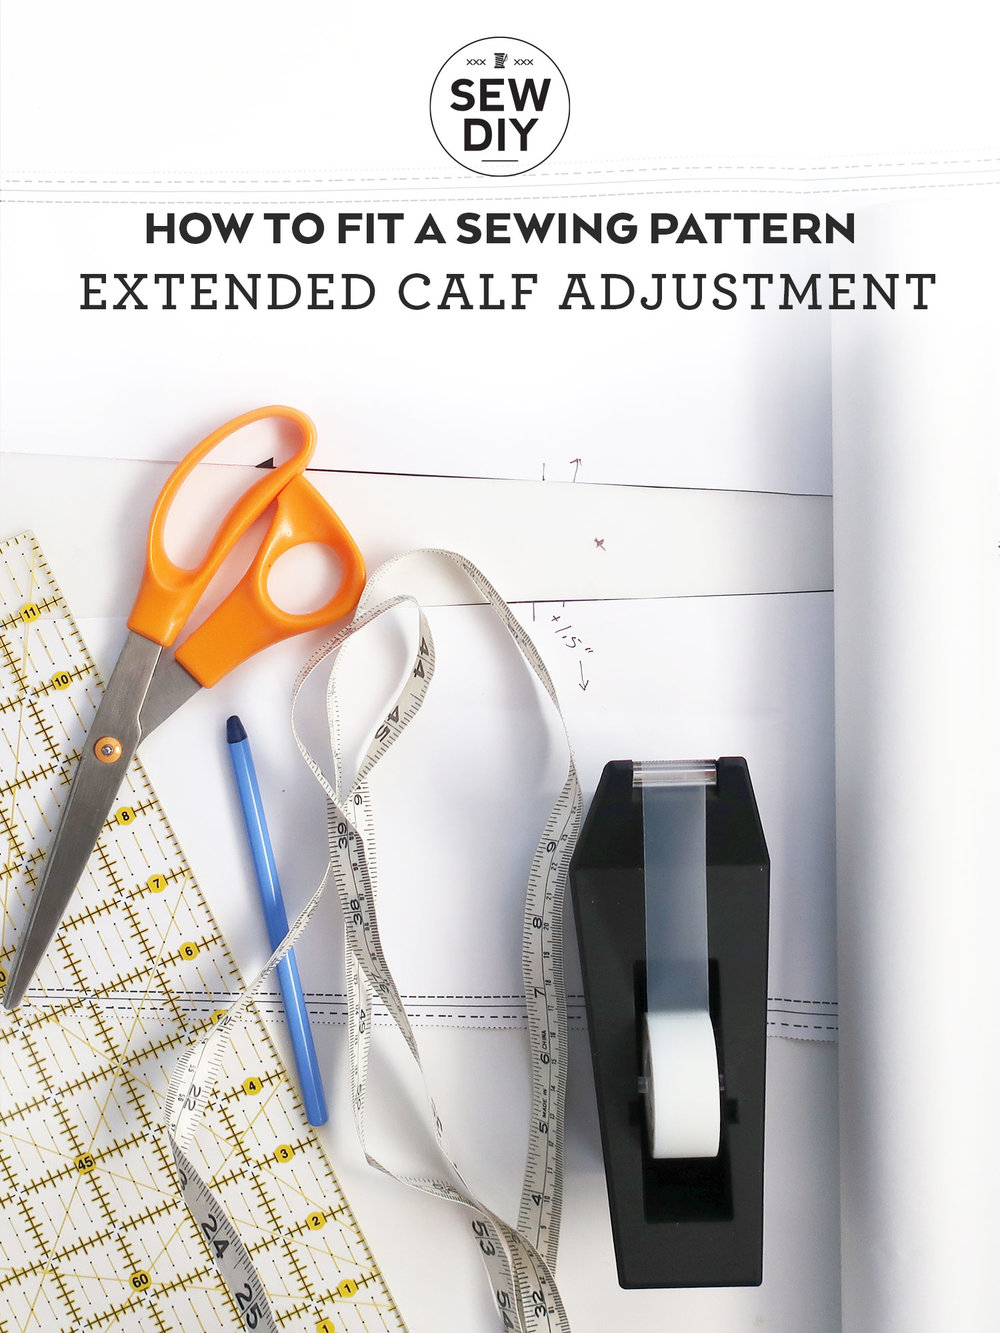 How to make a full calf adjustment Sewing tutorial | Sew DIY